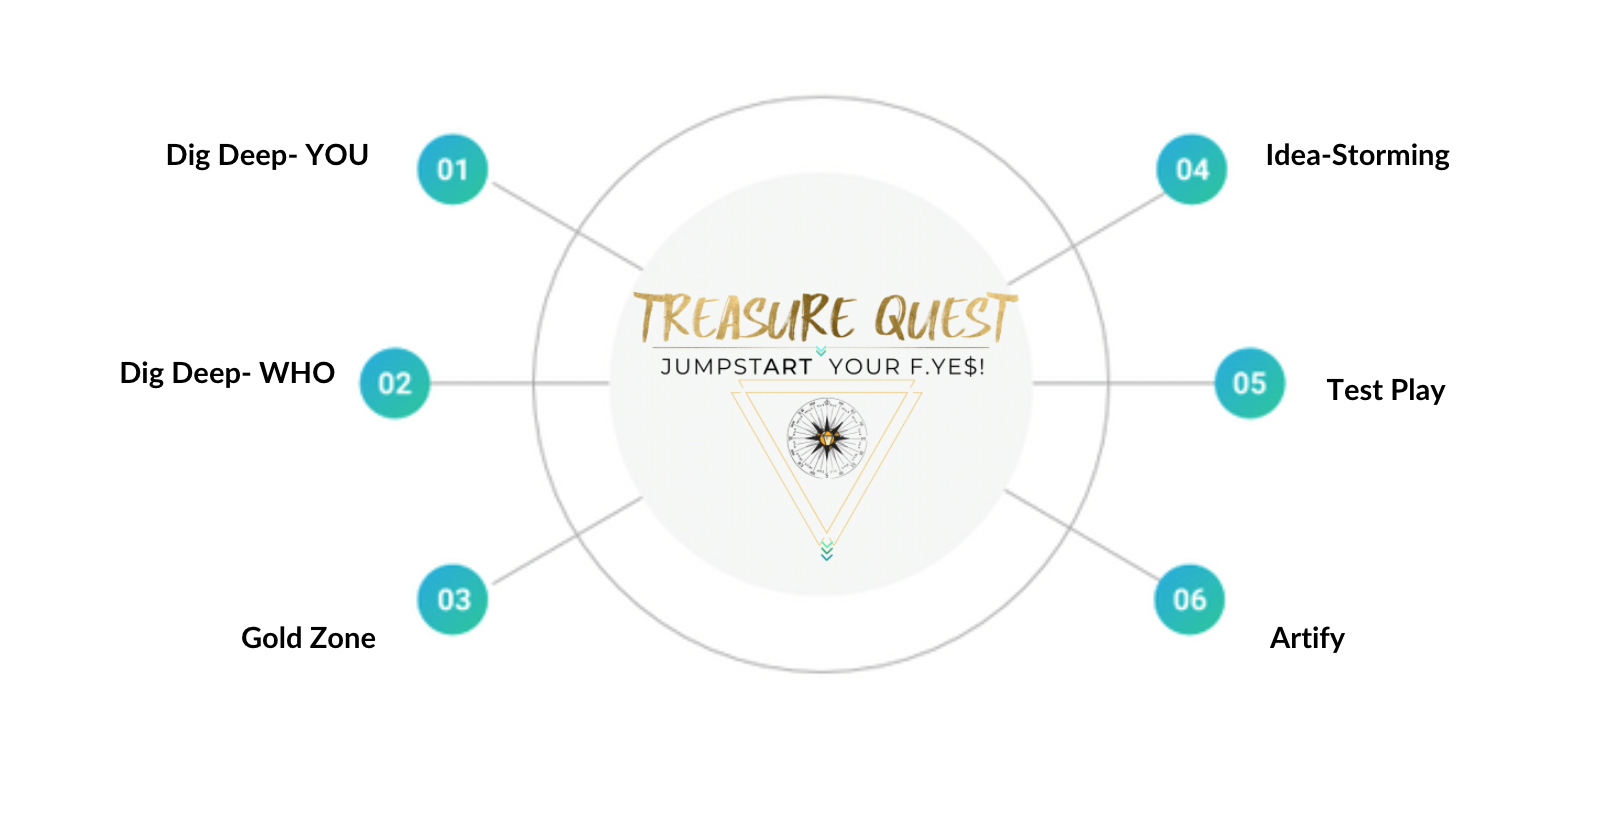 Treasure Quest 6 day Challenge Overview